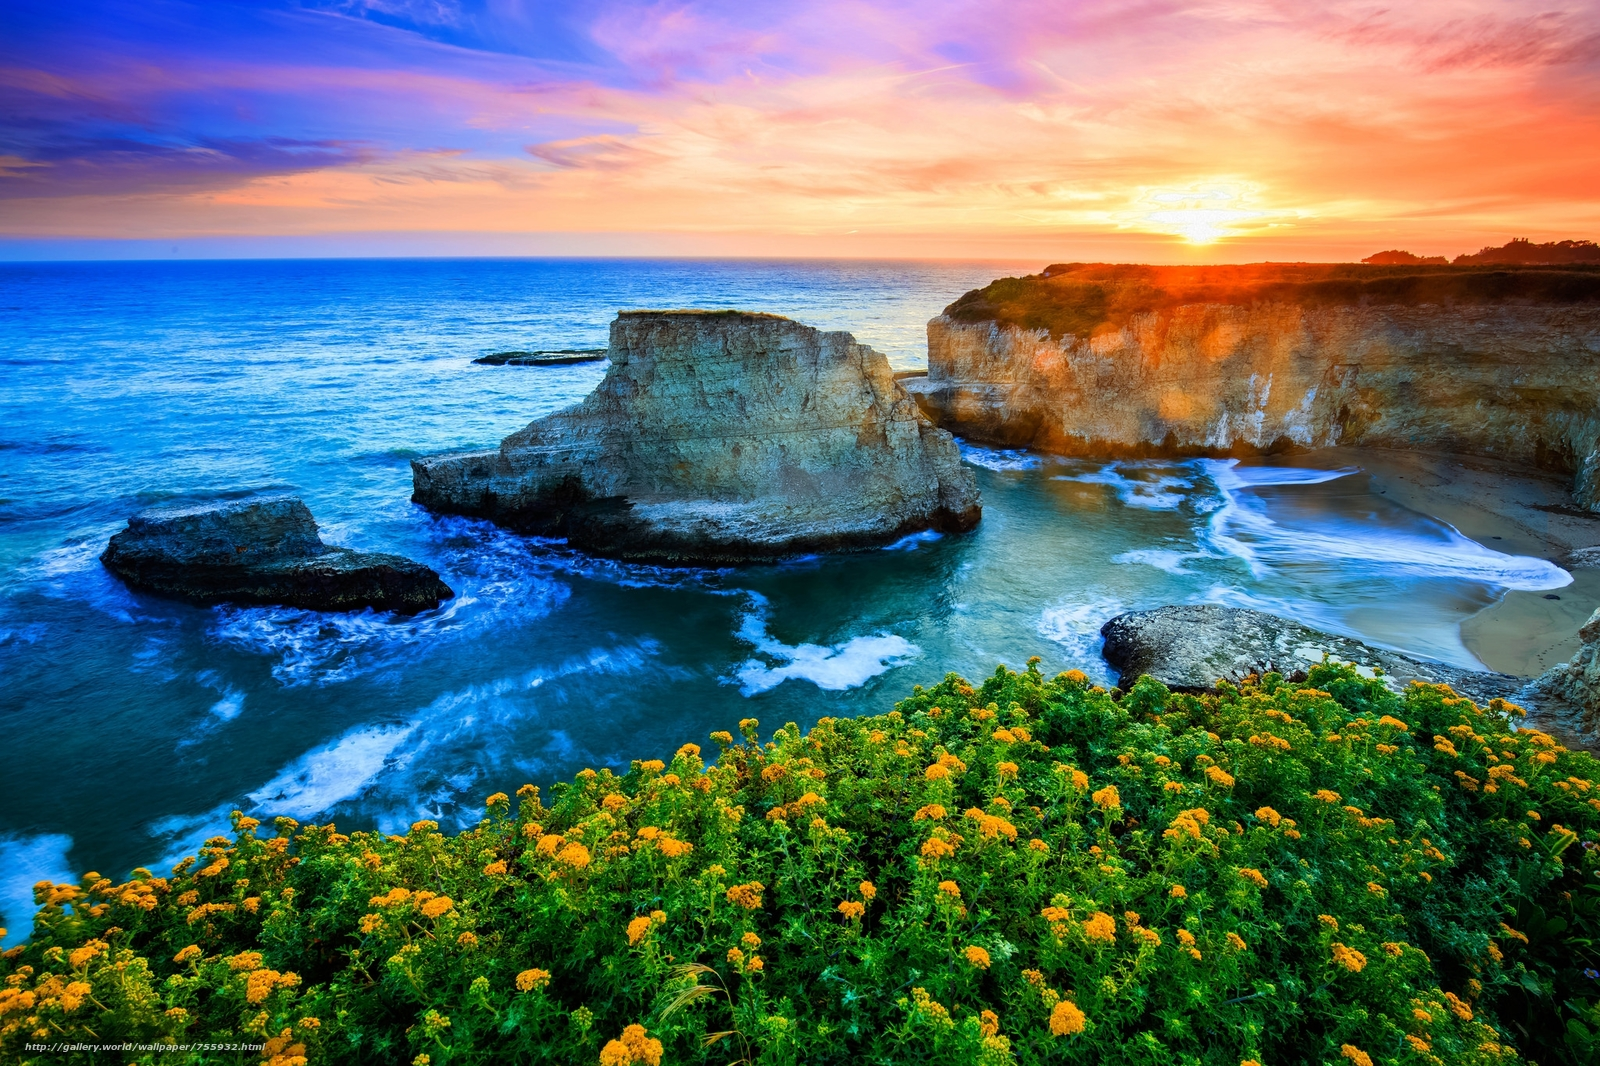 sunset, sea, rock, Coast, flowers, waves, landscape